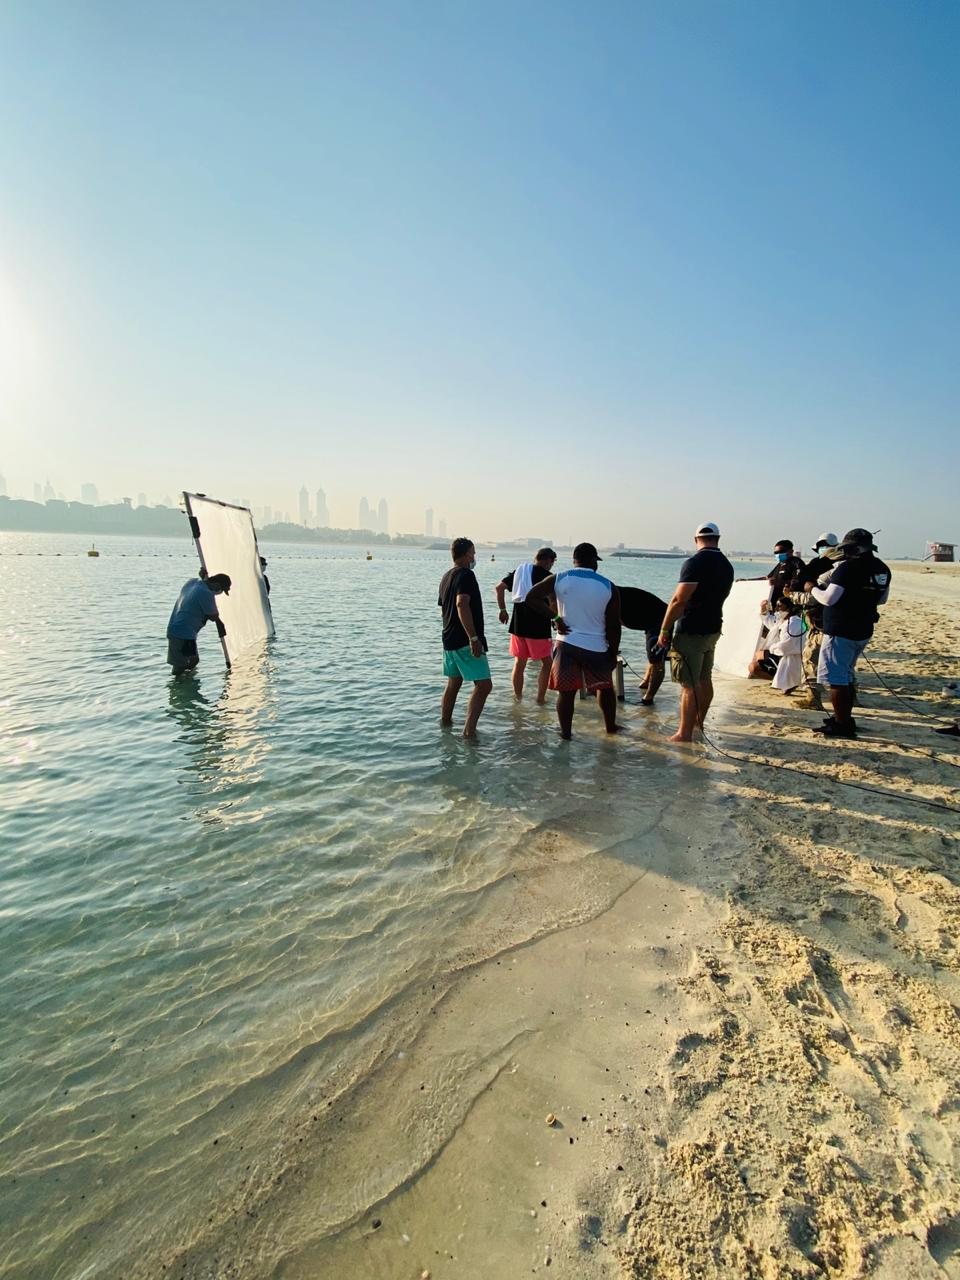 FIVE REMOTE SHOOTING TIPS FOR A SUCCESSFUL PRODUCTION